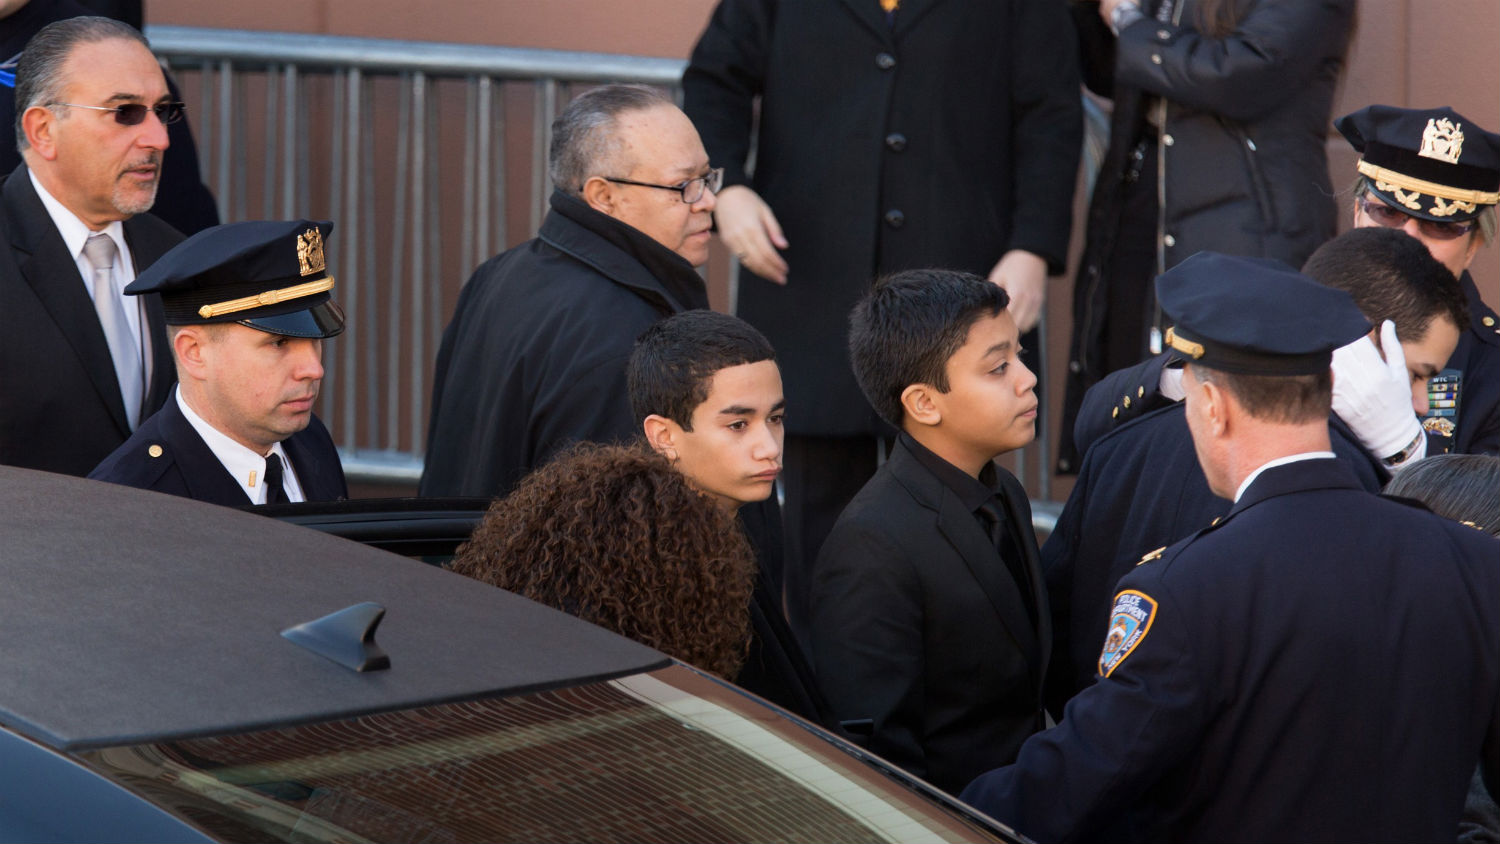 Jaden Ramos, center, the younger son of Officer Ramos, arrives at his father's funeral.